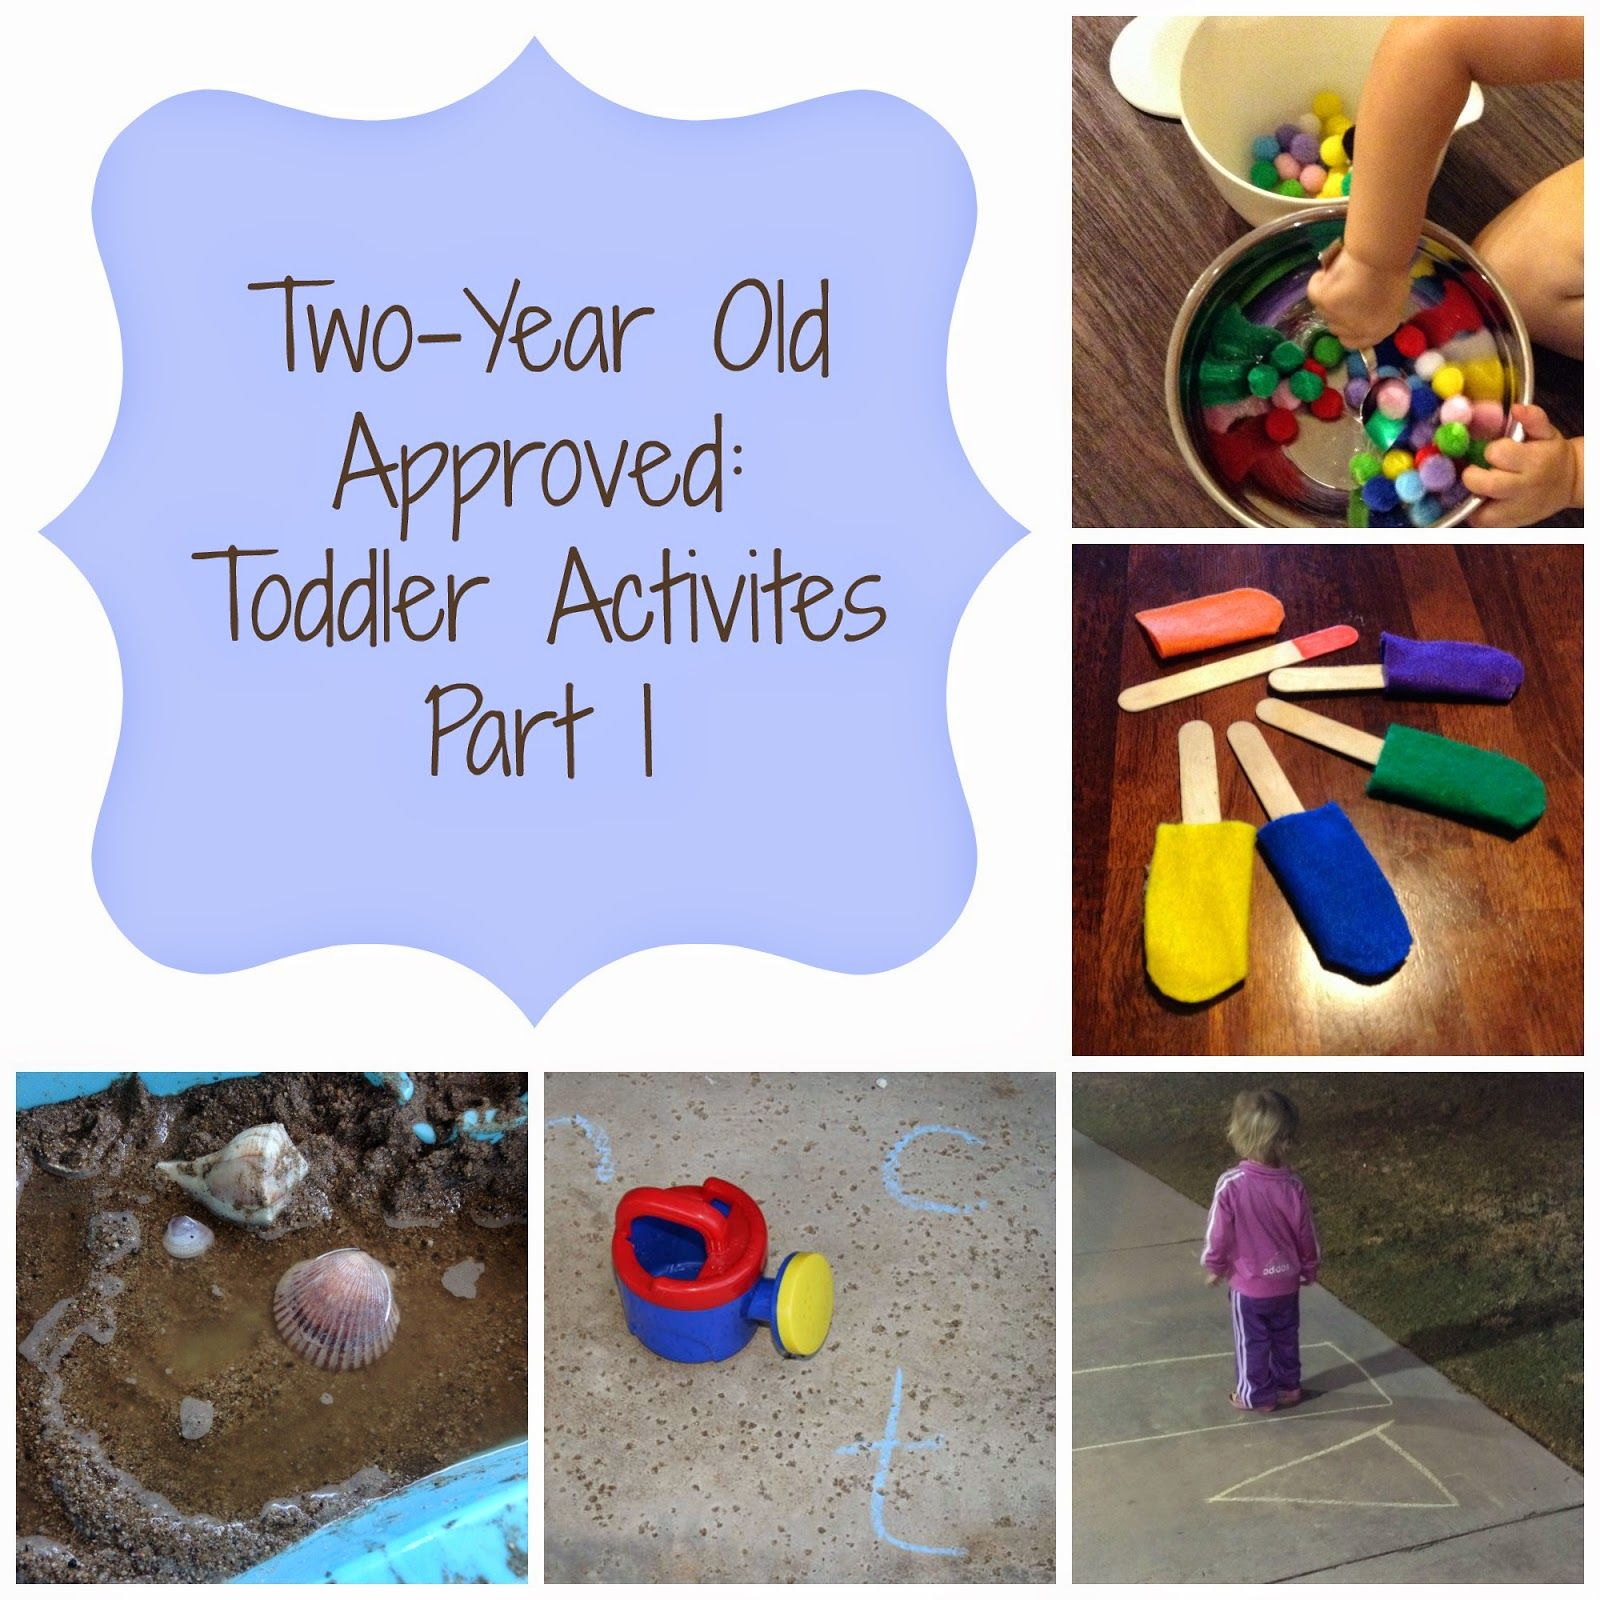 easy toddler activities to do at home with a 2 year old 24 months